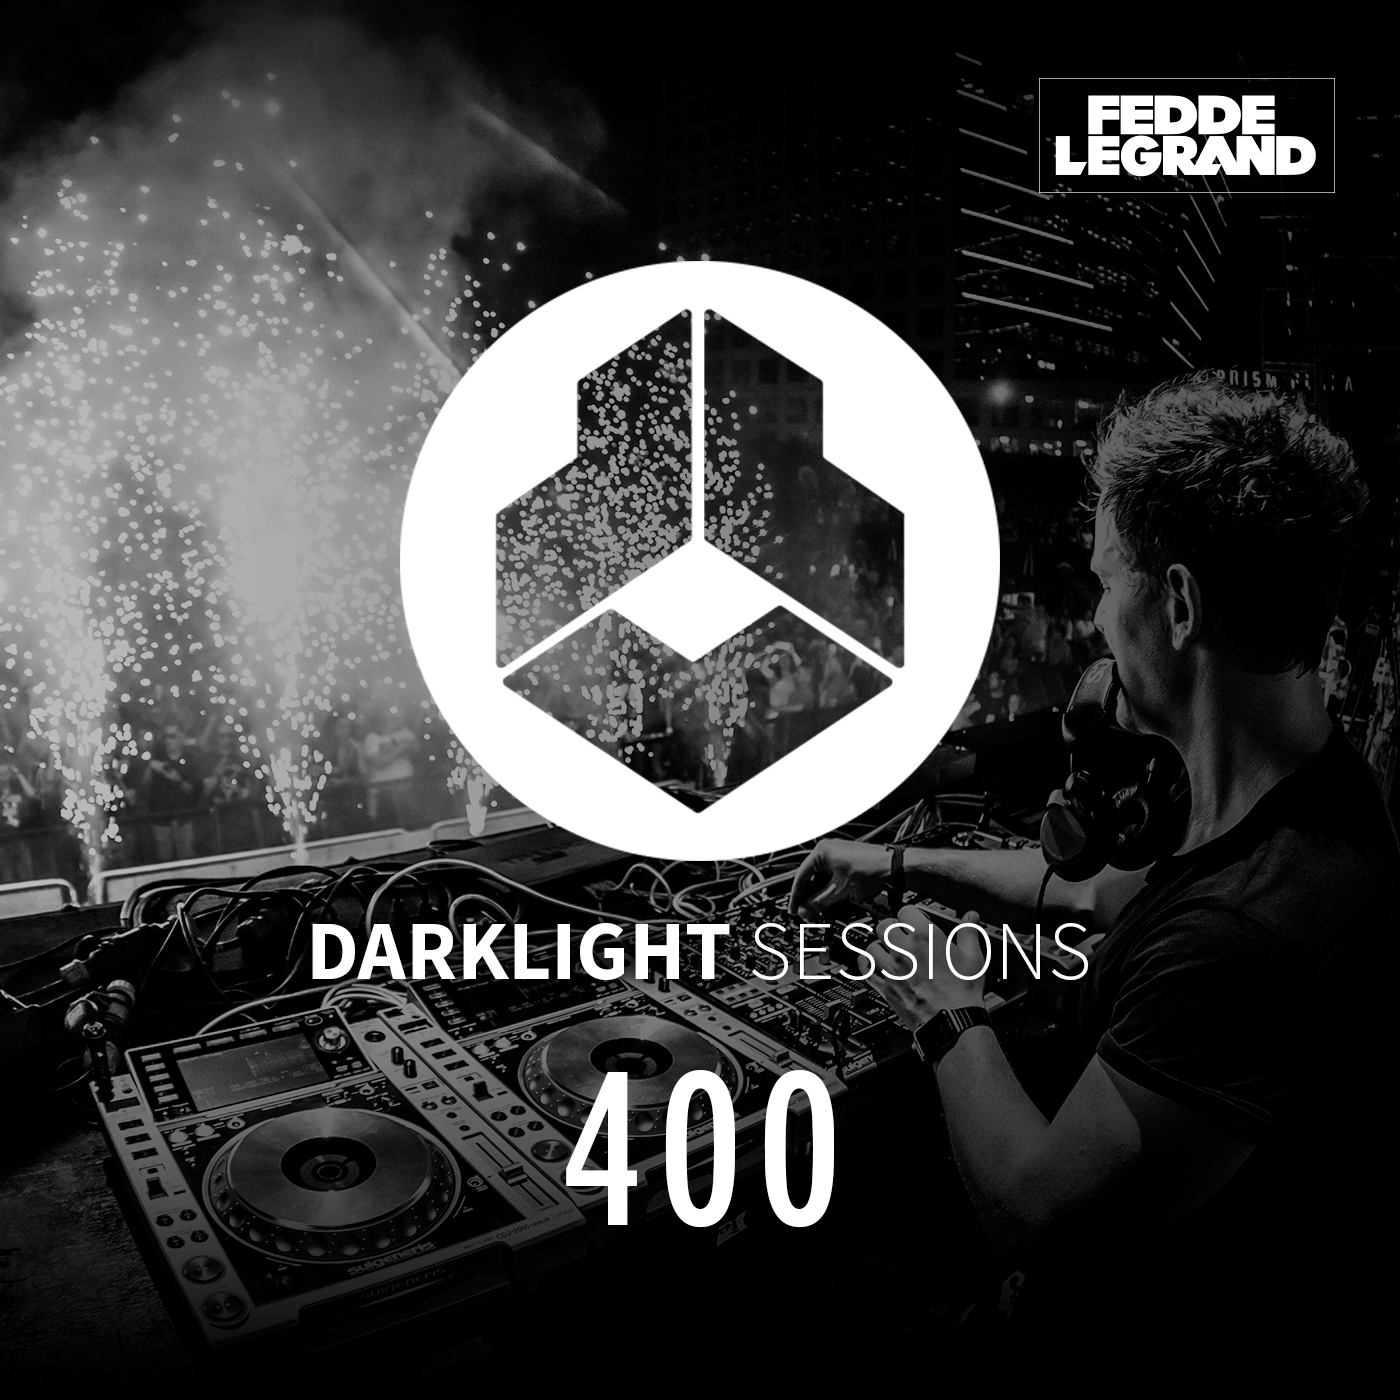 Darklight Sessions 400